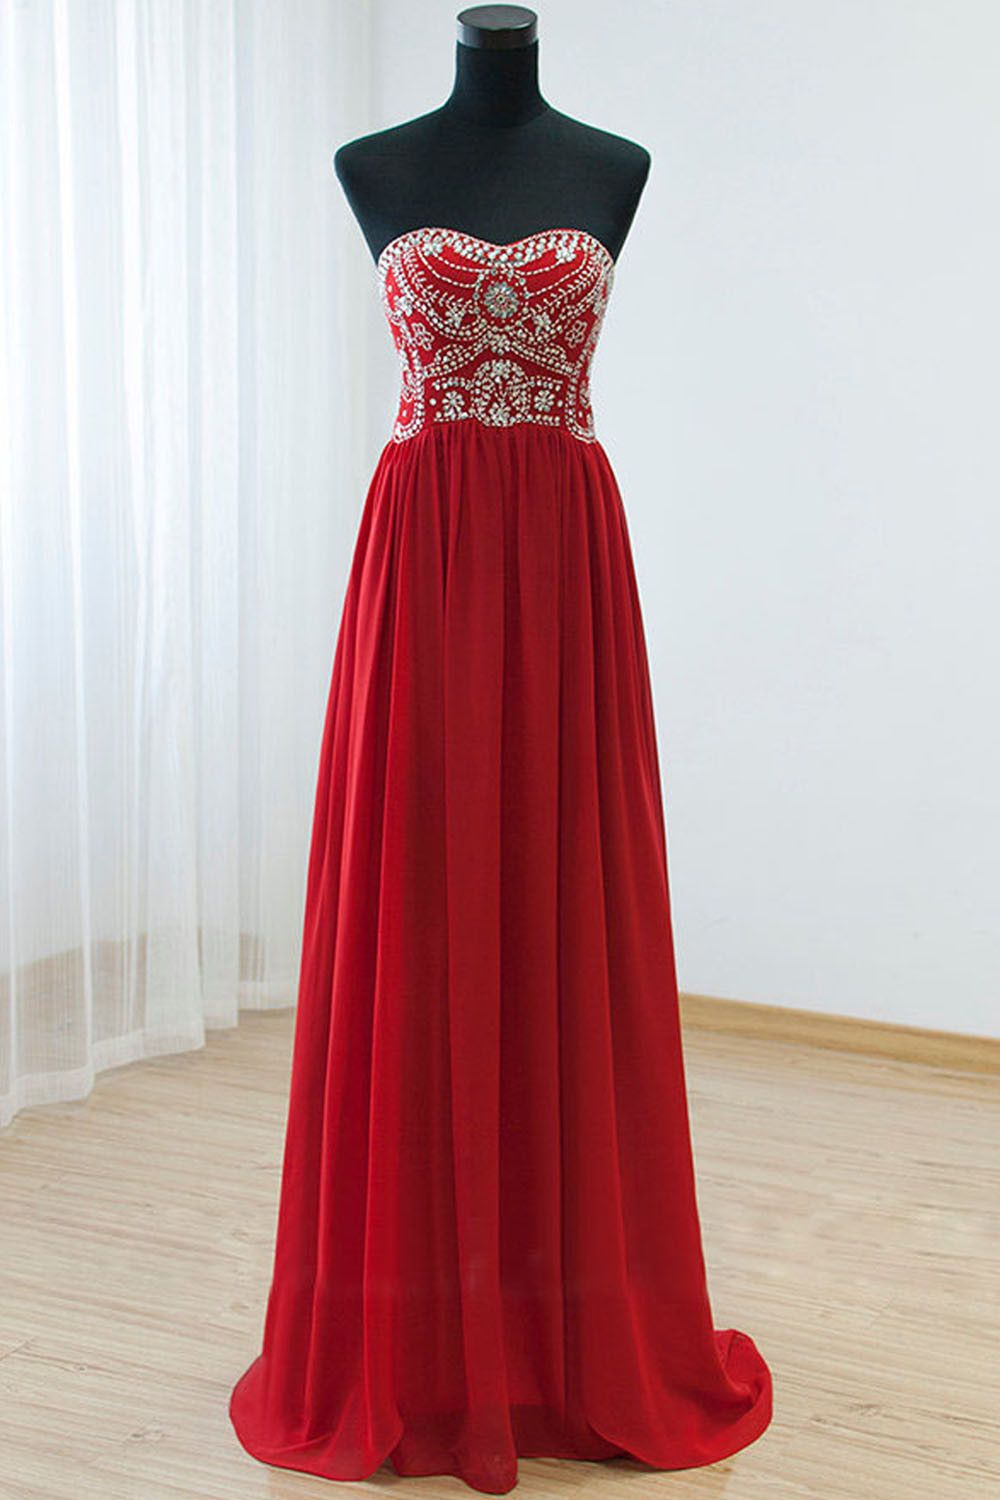 Empire waist red backless sexy long prom evening dress amy